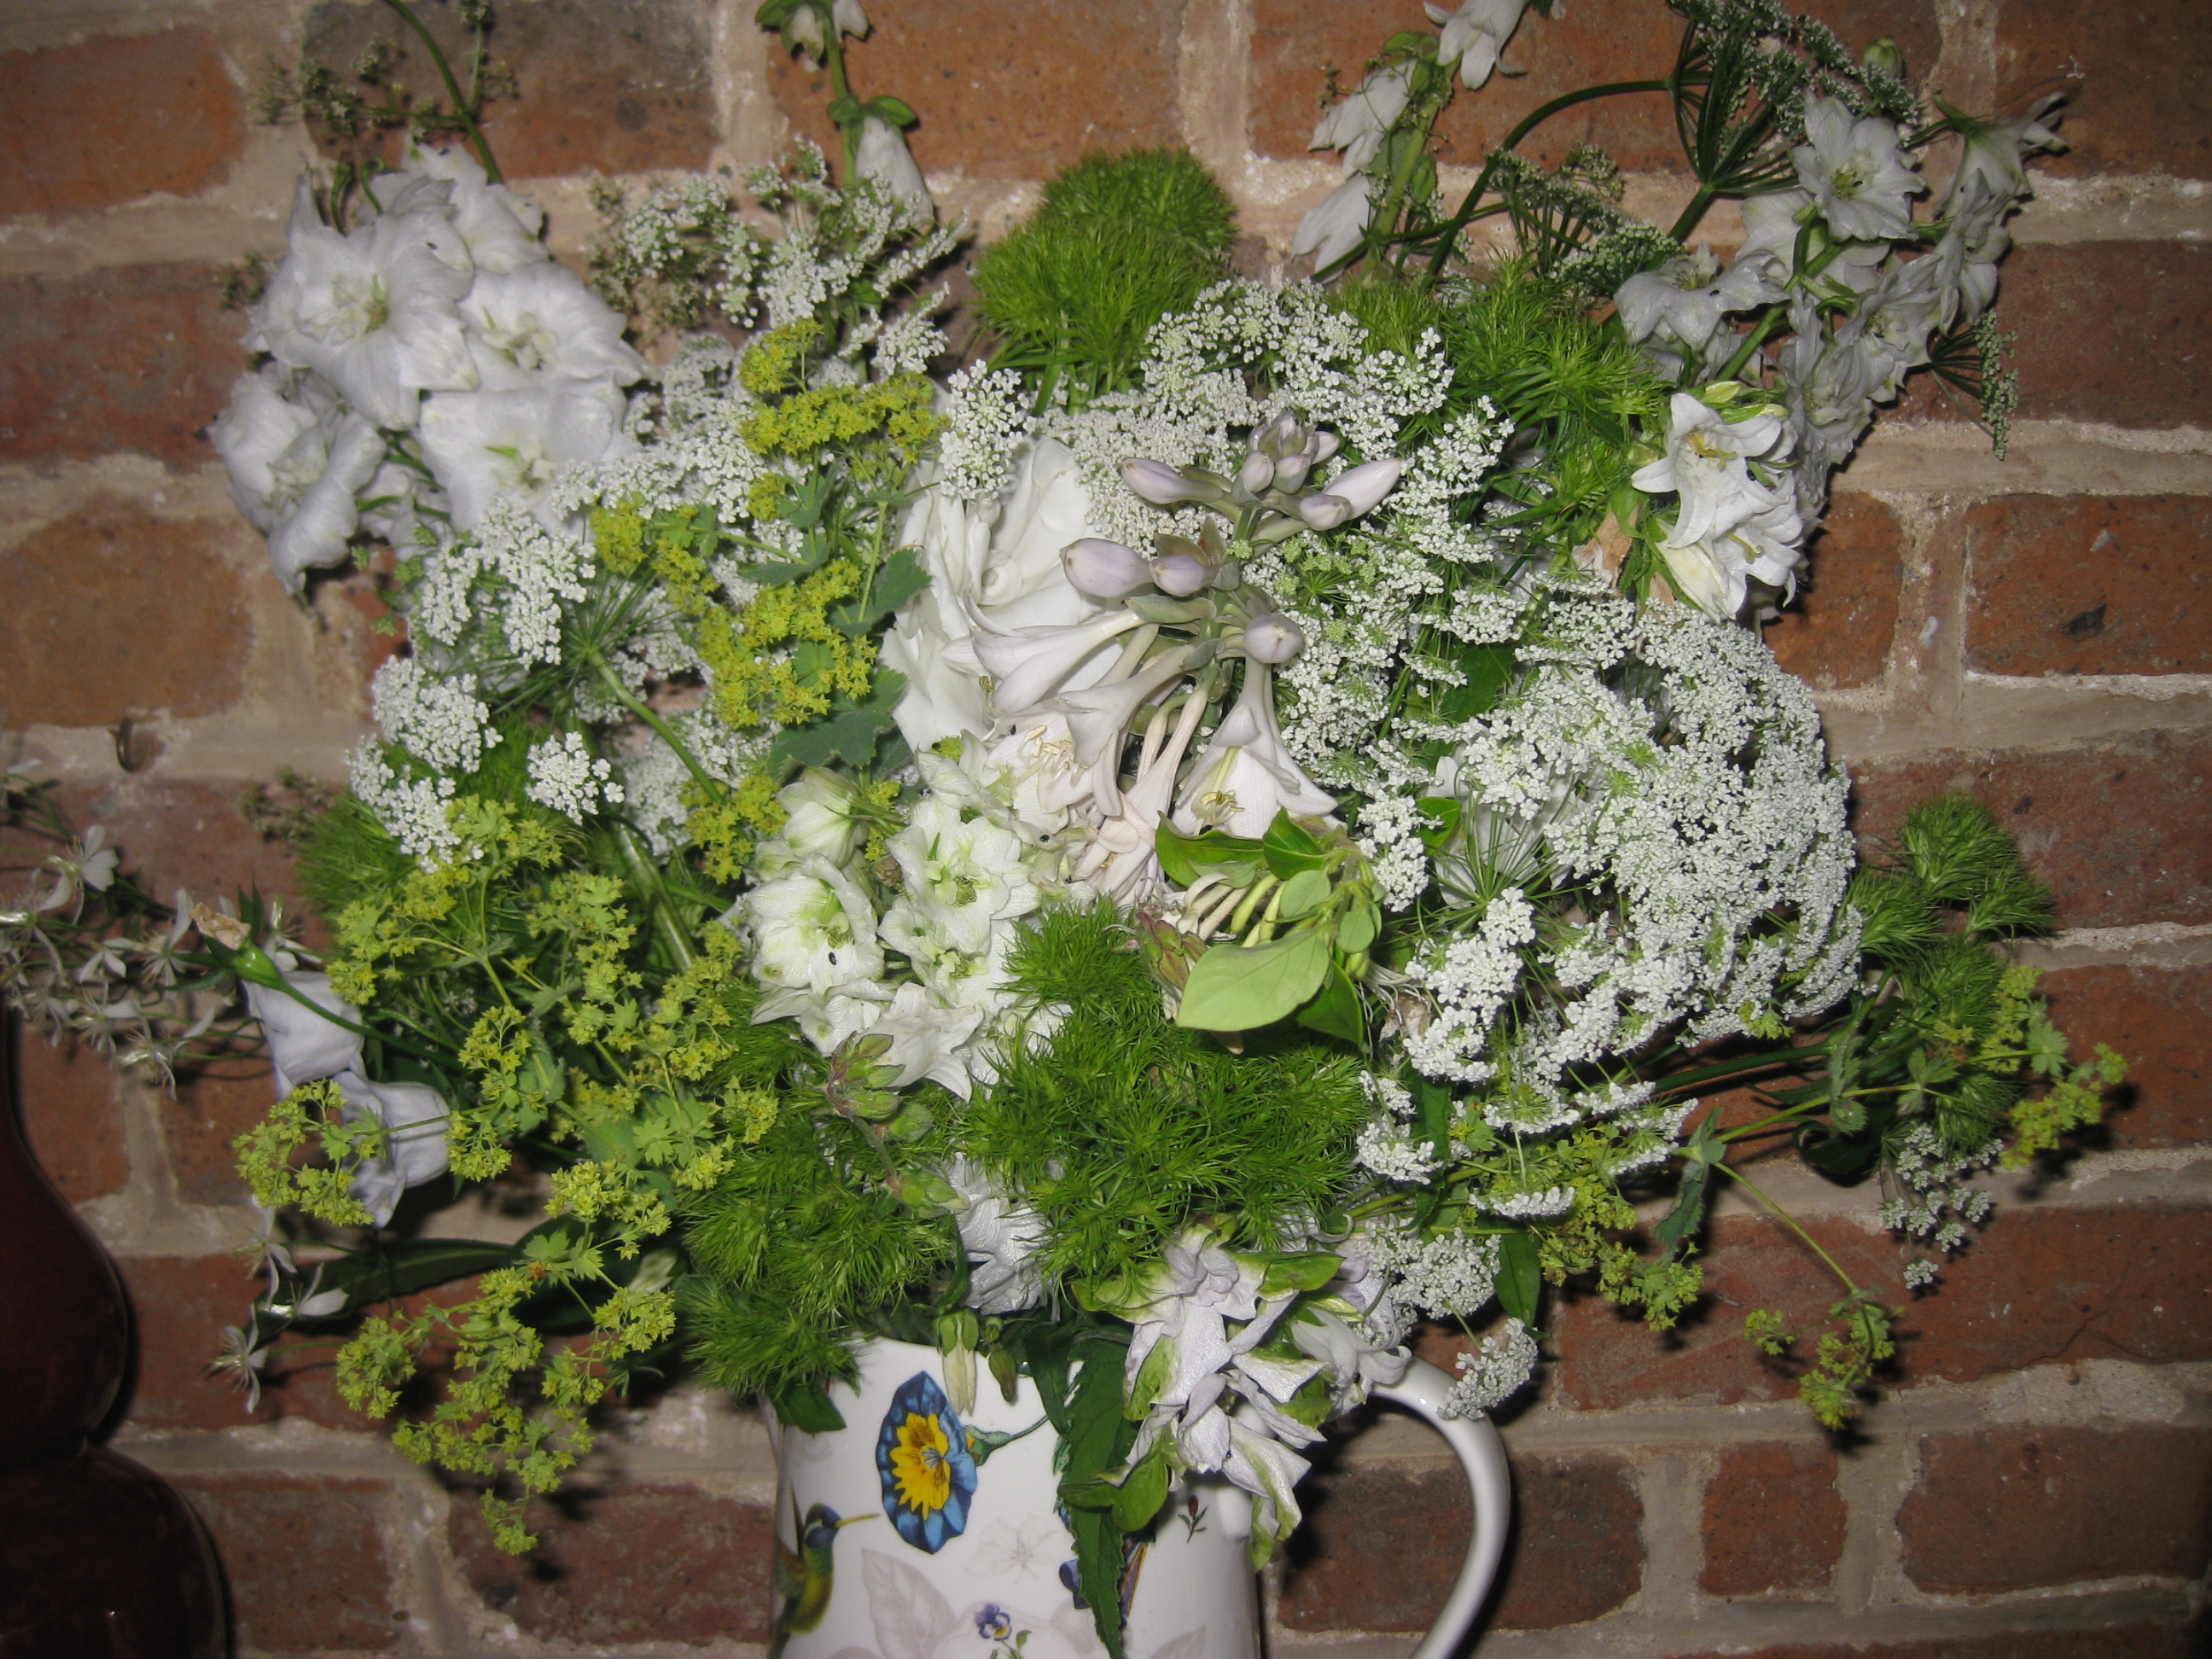 In a vase on monday white foam the blooming garden cathy at ramblinginthegarden has got everyone picking their flowers and putting them in vases do join in it is fun if you go over there you will see what mightylinksfo